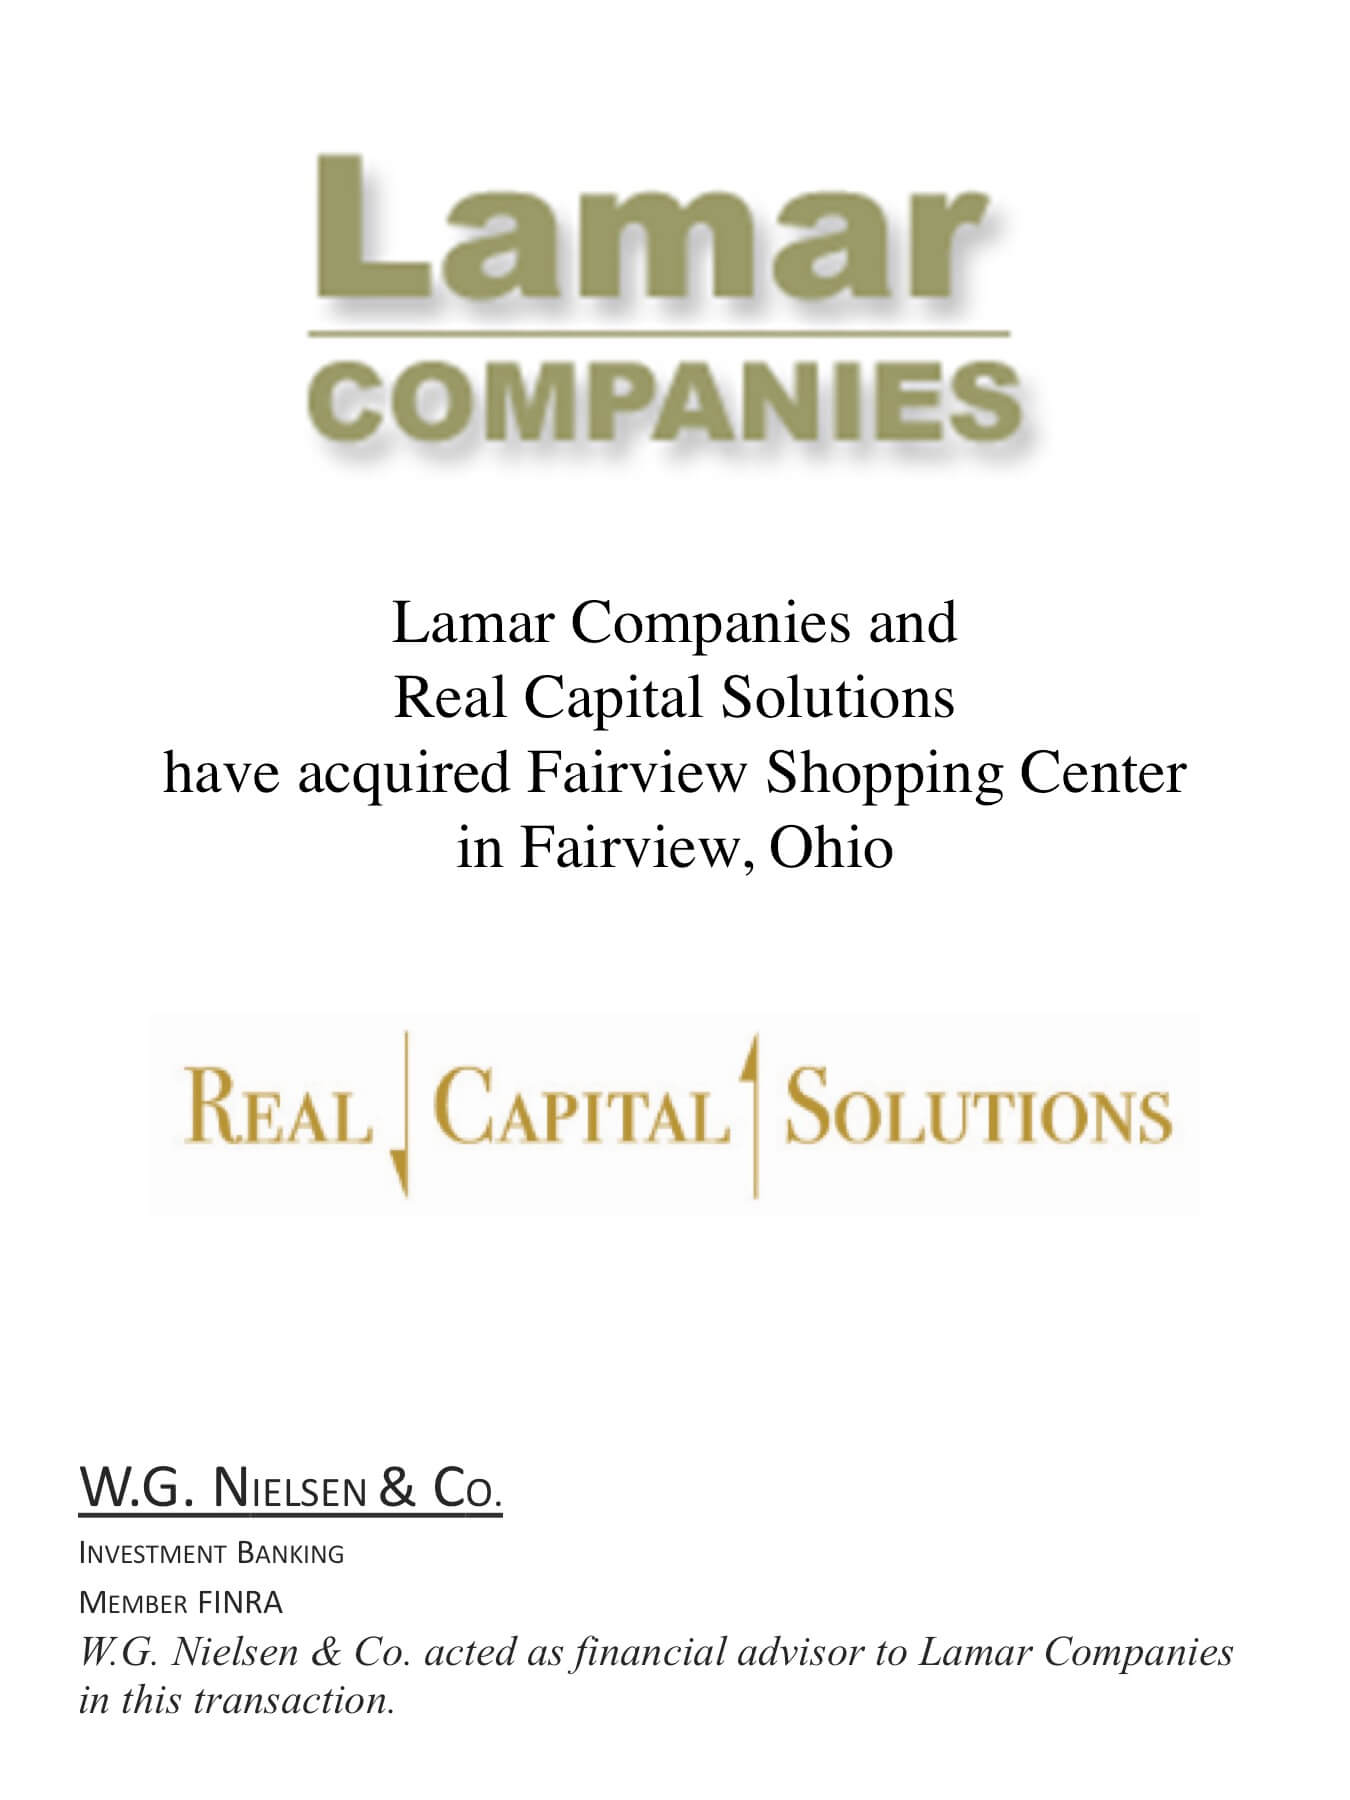 lamar companies 2 investment banking transaction